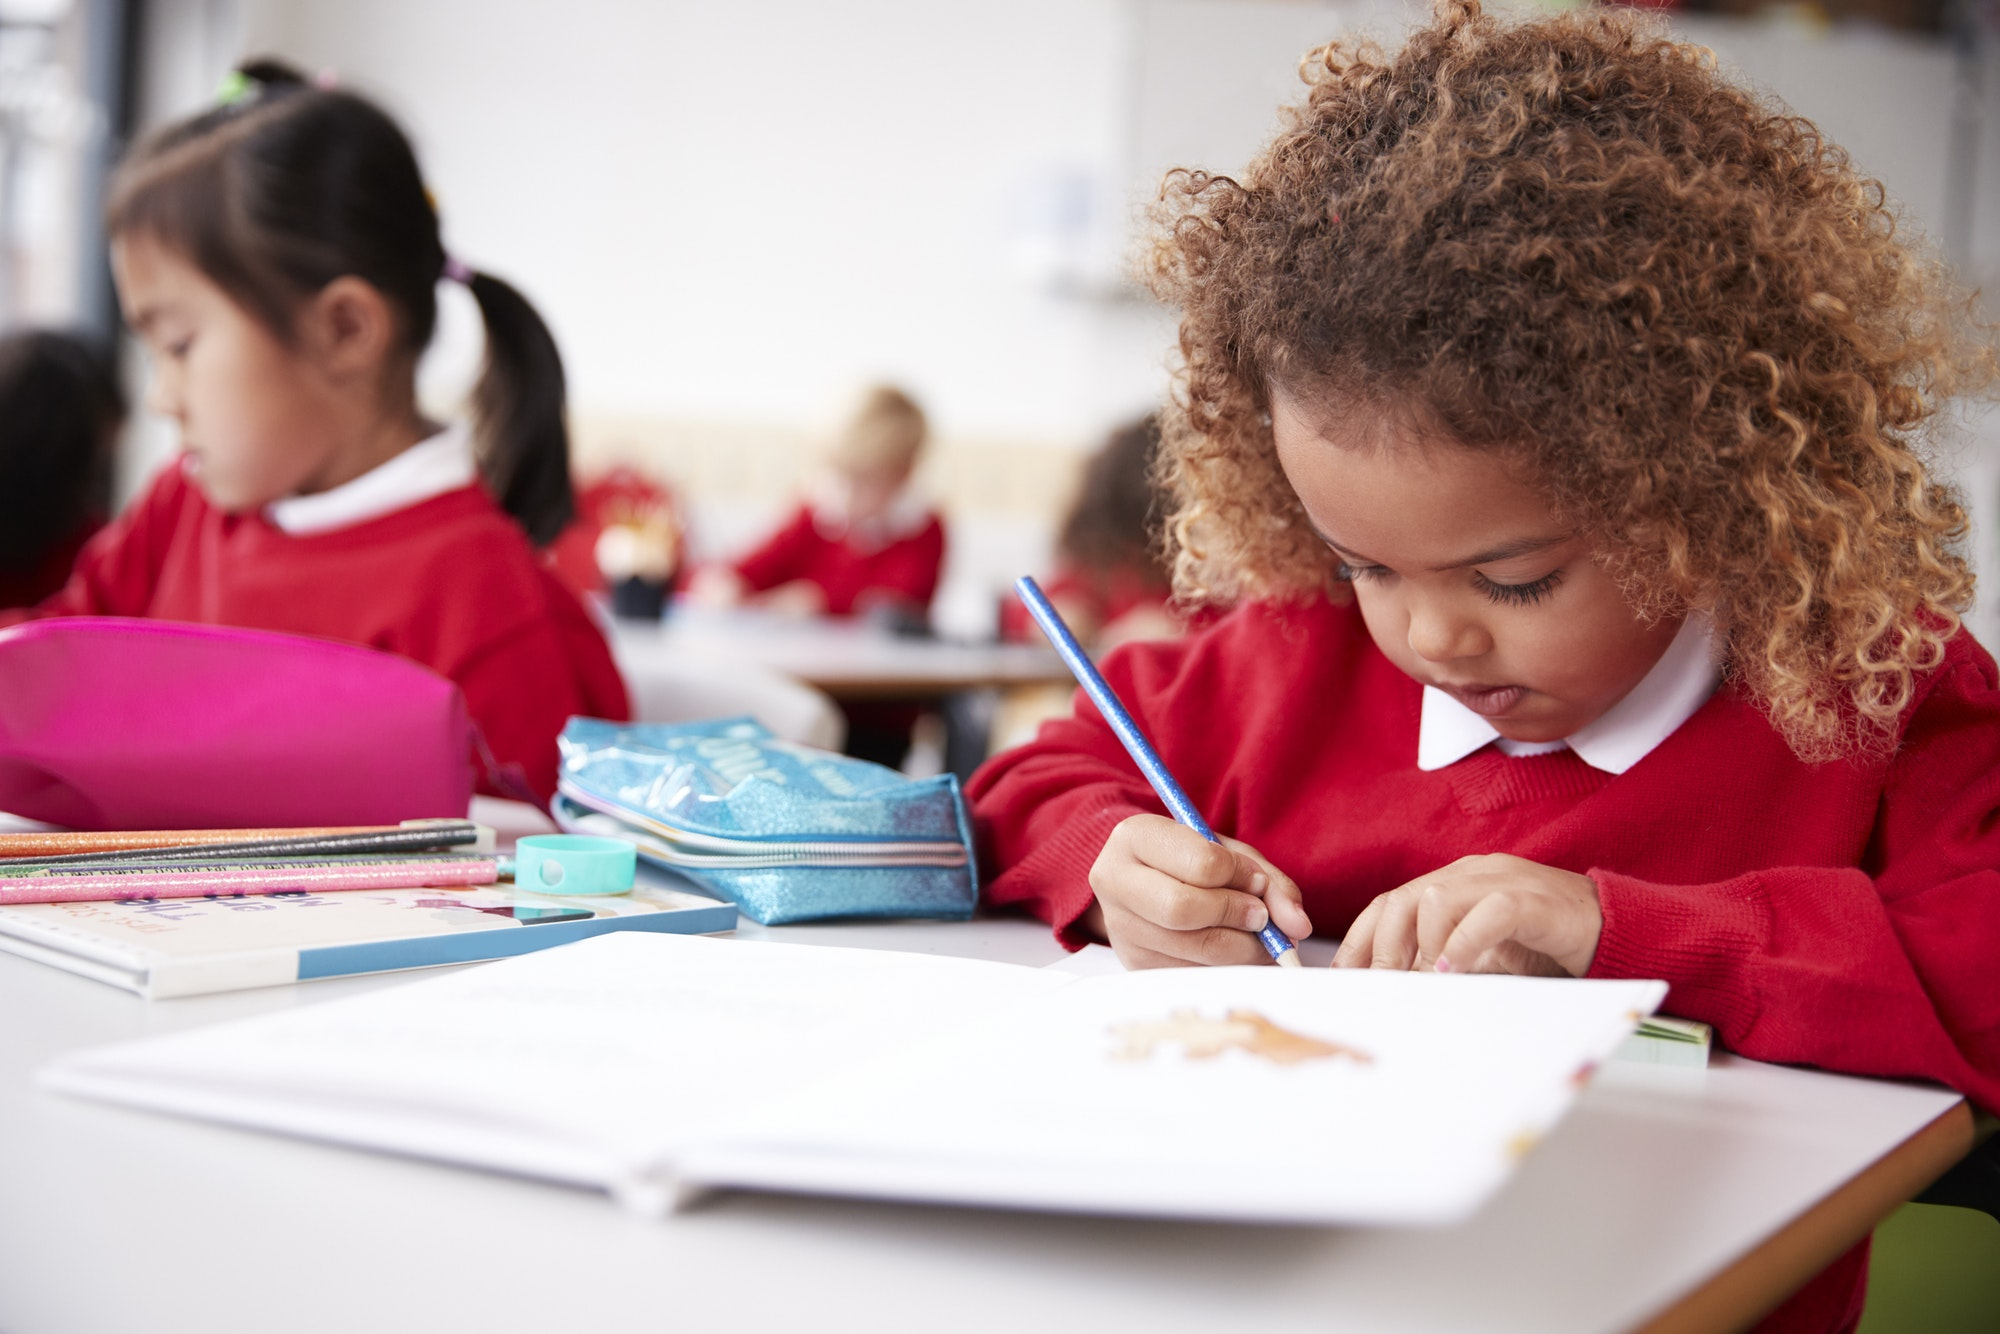 Mixed race schoolgirl sitting at a desk in an infant school classroom drawing, close up